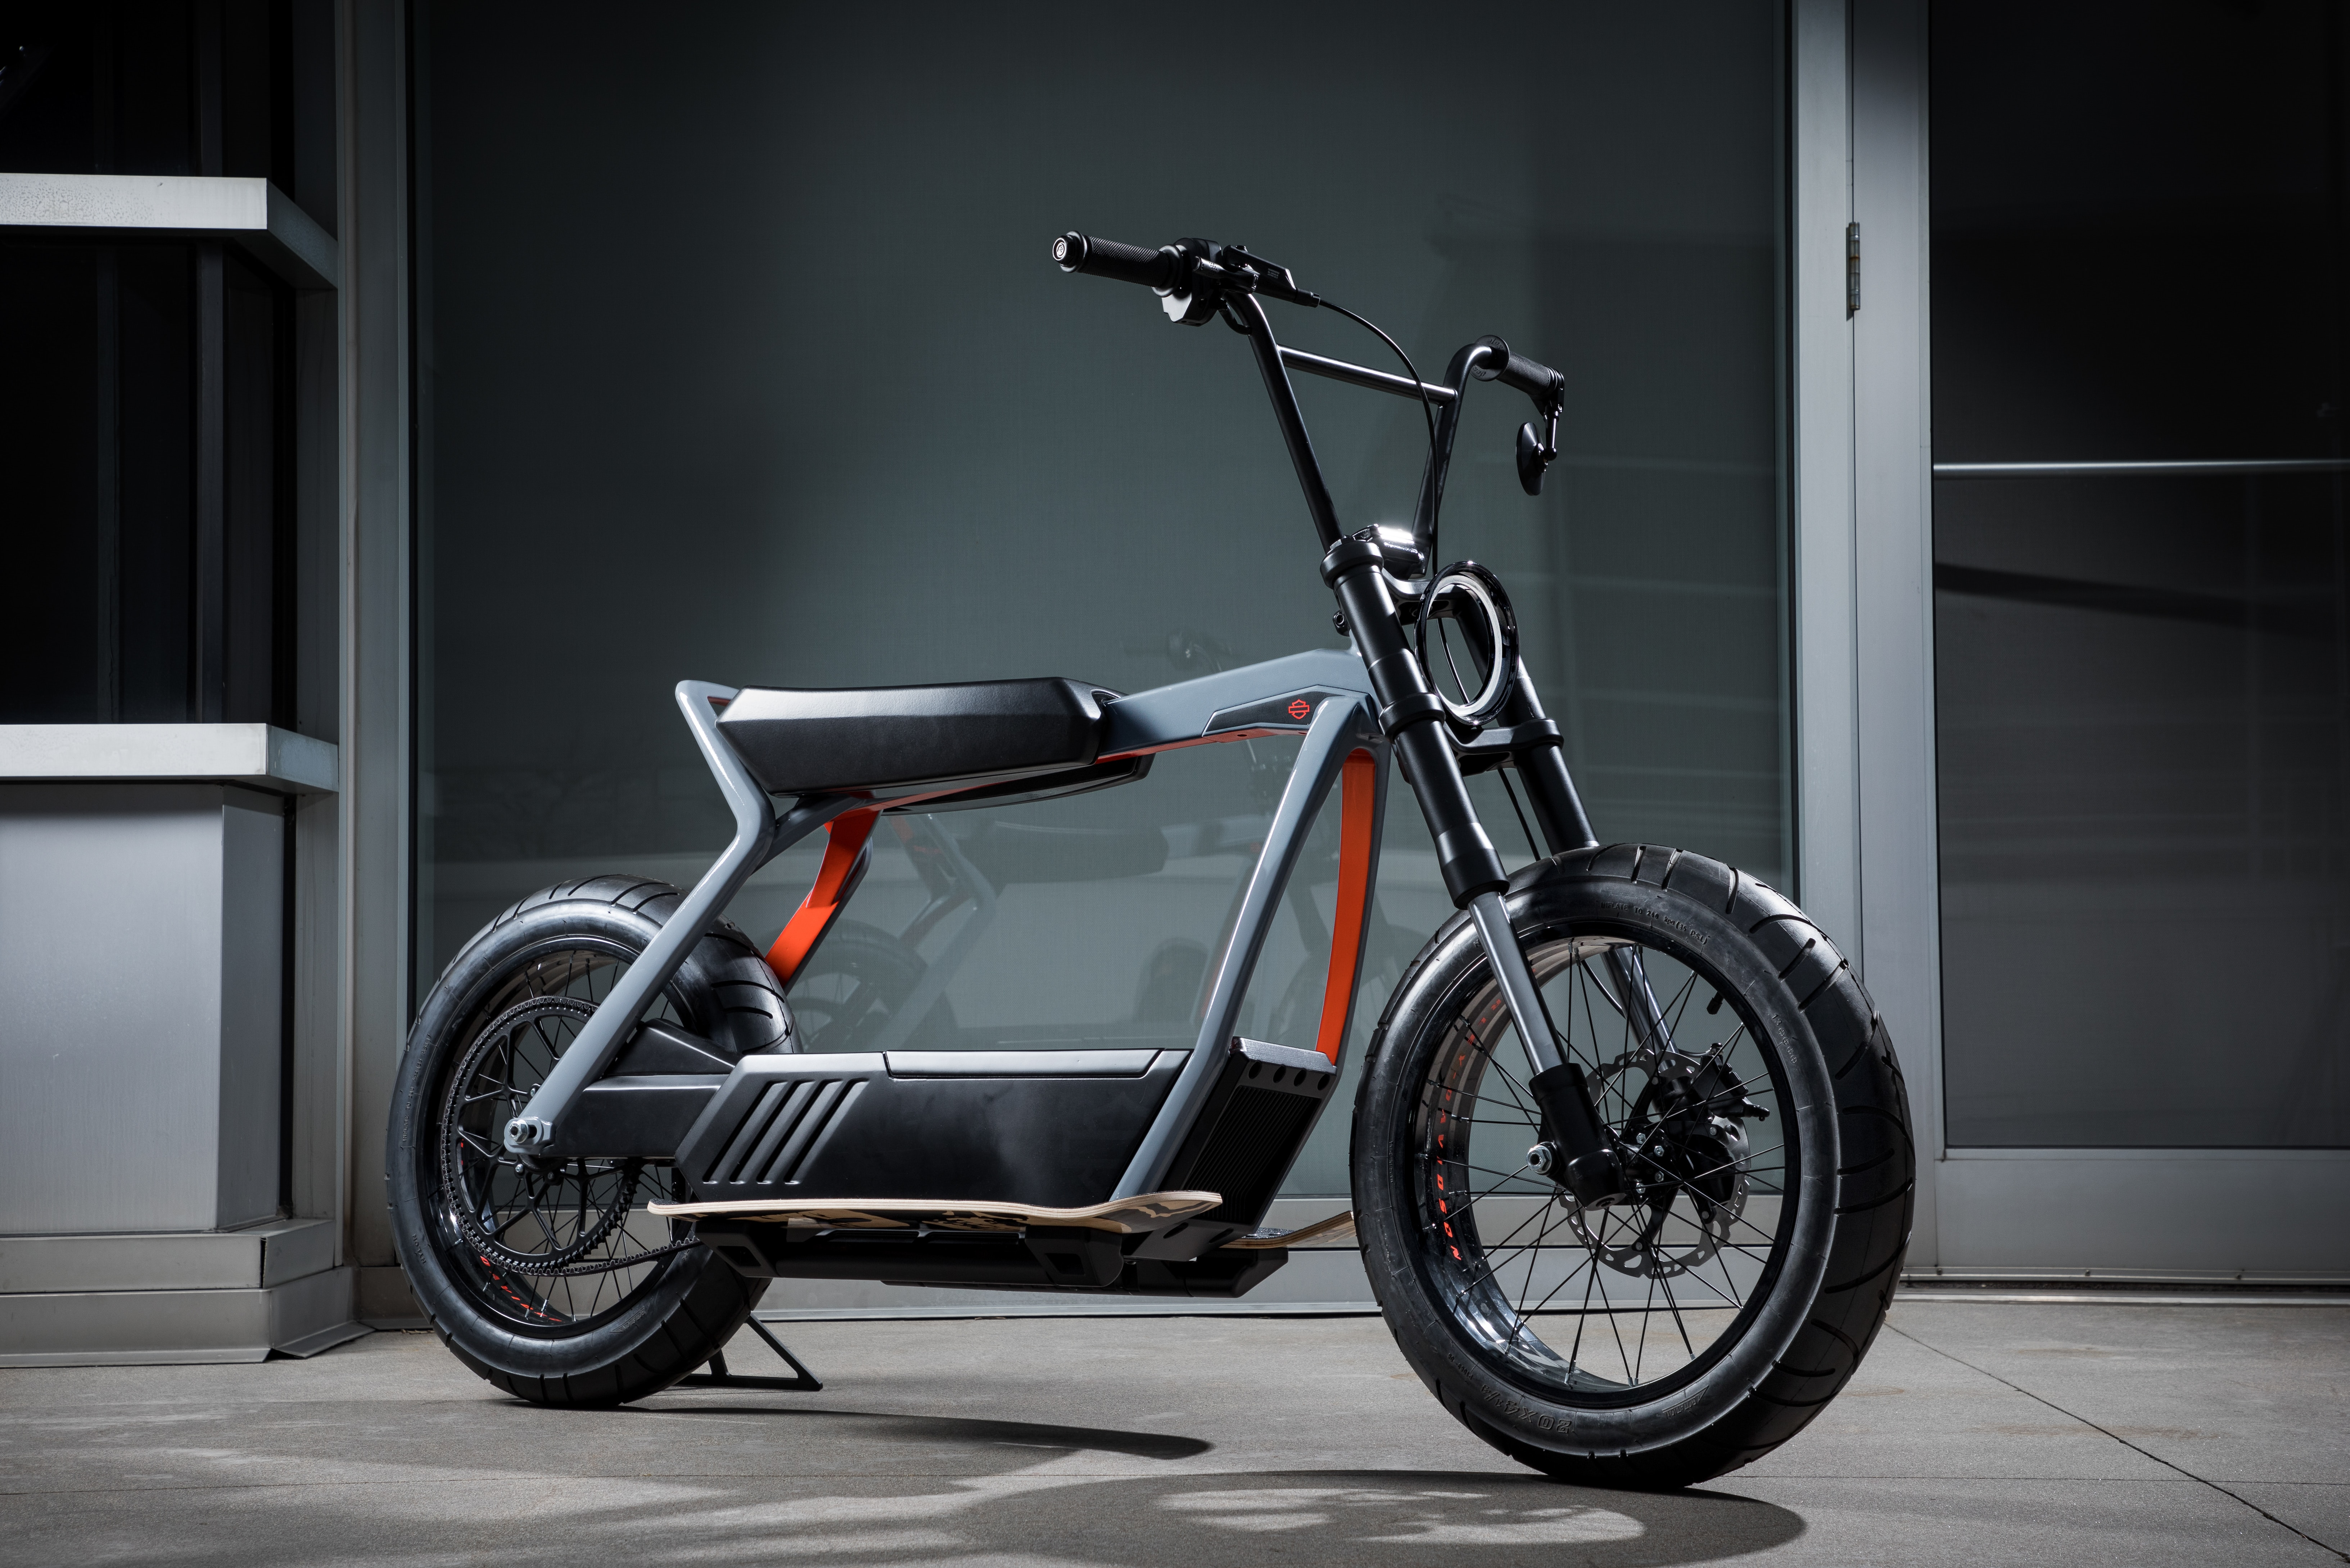 E Bike Tariff Exclusion Is Doubtful But Exclusion Requests Pour In Following State Bicycle S Victory Bicycle Retailer And Industry News